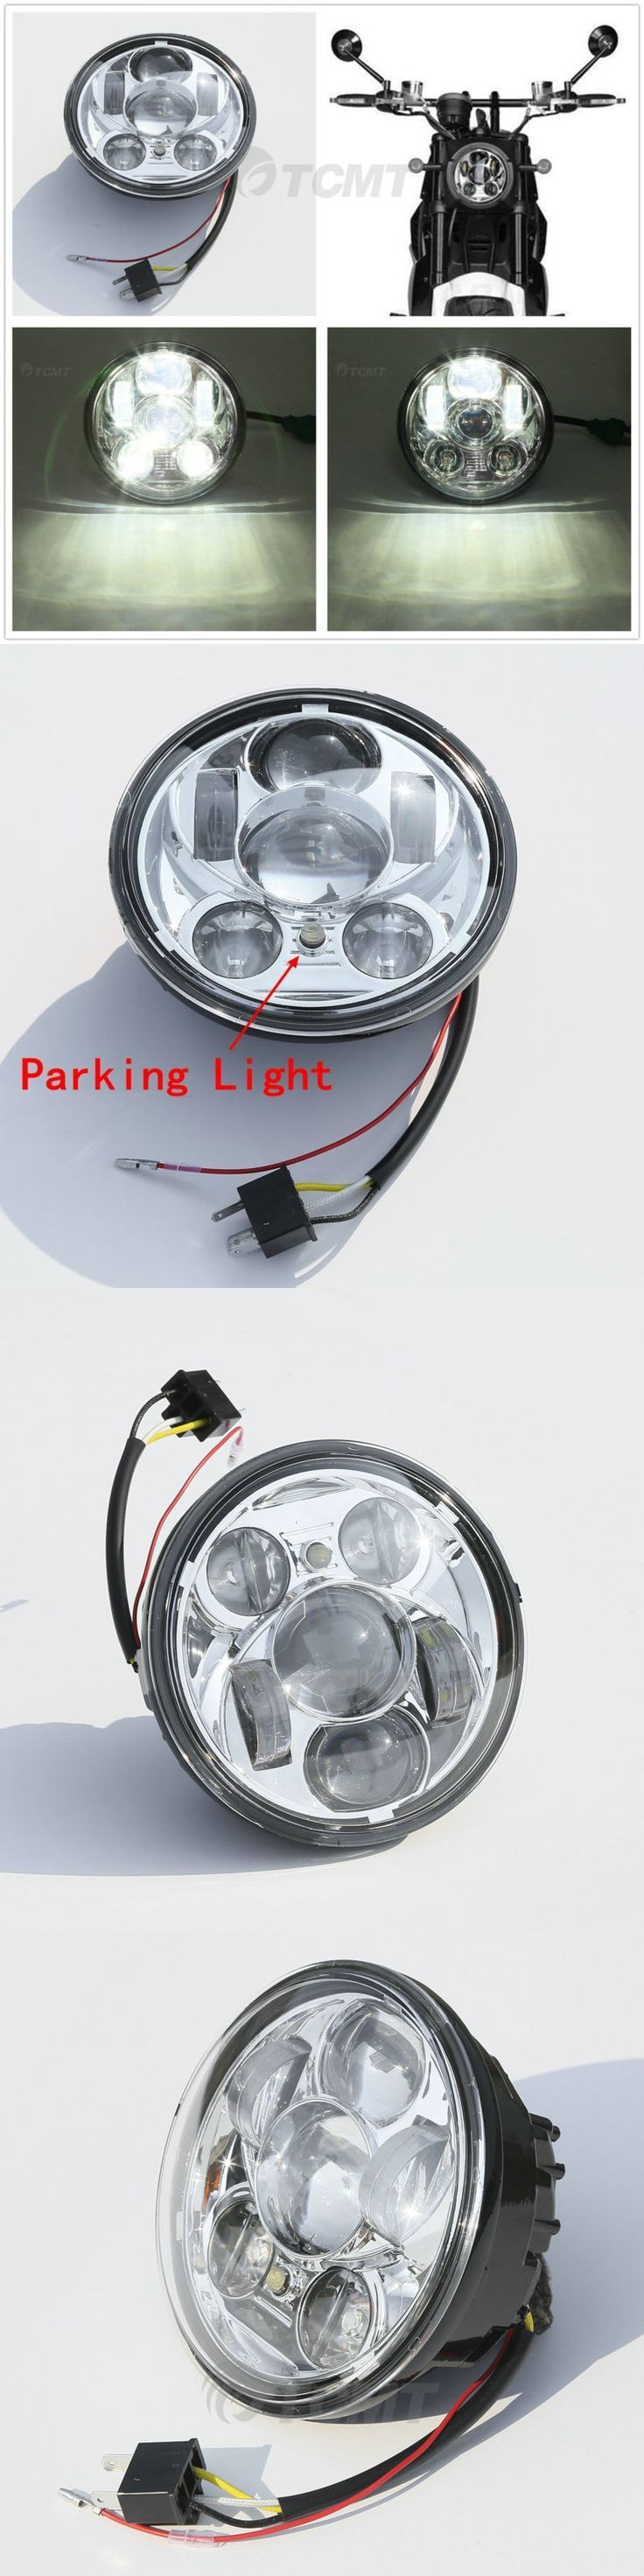 motorcycle parts: 5.75 Daymaker Projector Led Headlight Light For Harley Dyna Softail Sportster -> BUY IT NOW ONLY: $44.98 on eBay!